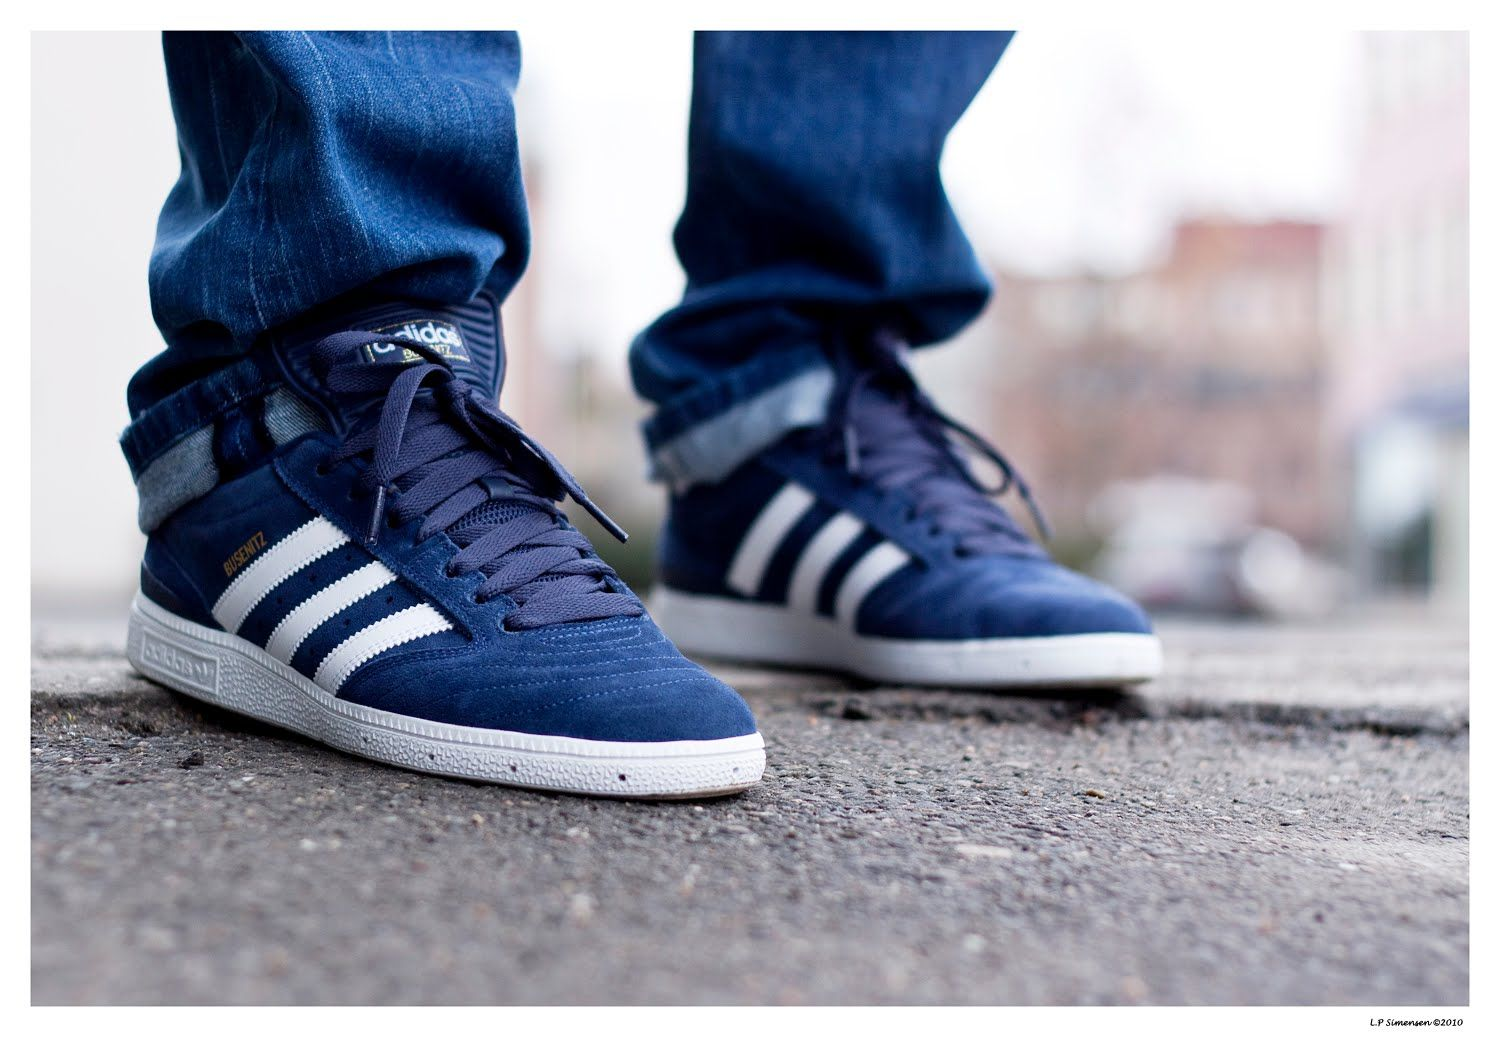 cheap for discount 5a3f2 6a3e3 Adidas Busenitz  Clothes On My Back  Adidas, Adidas sneakers